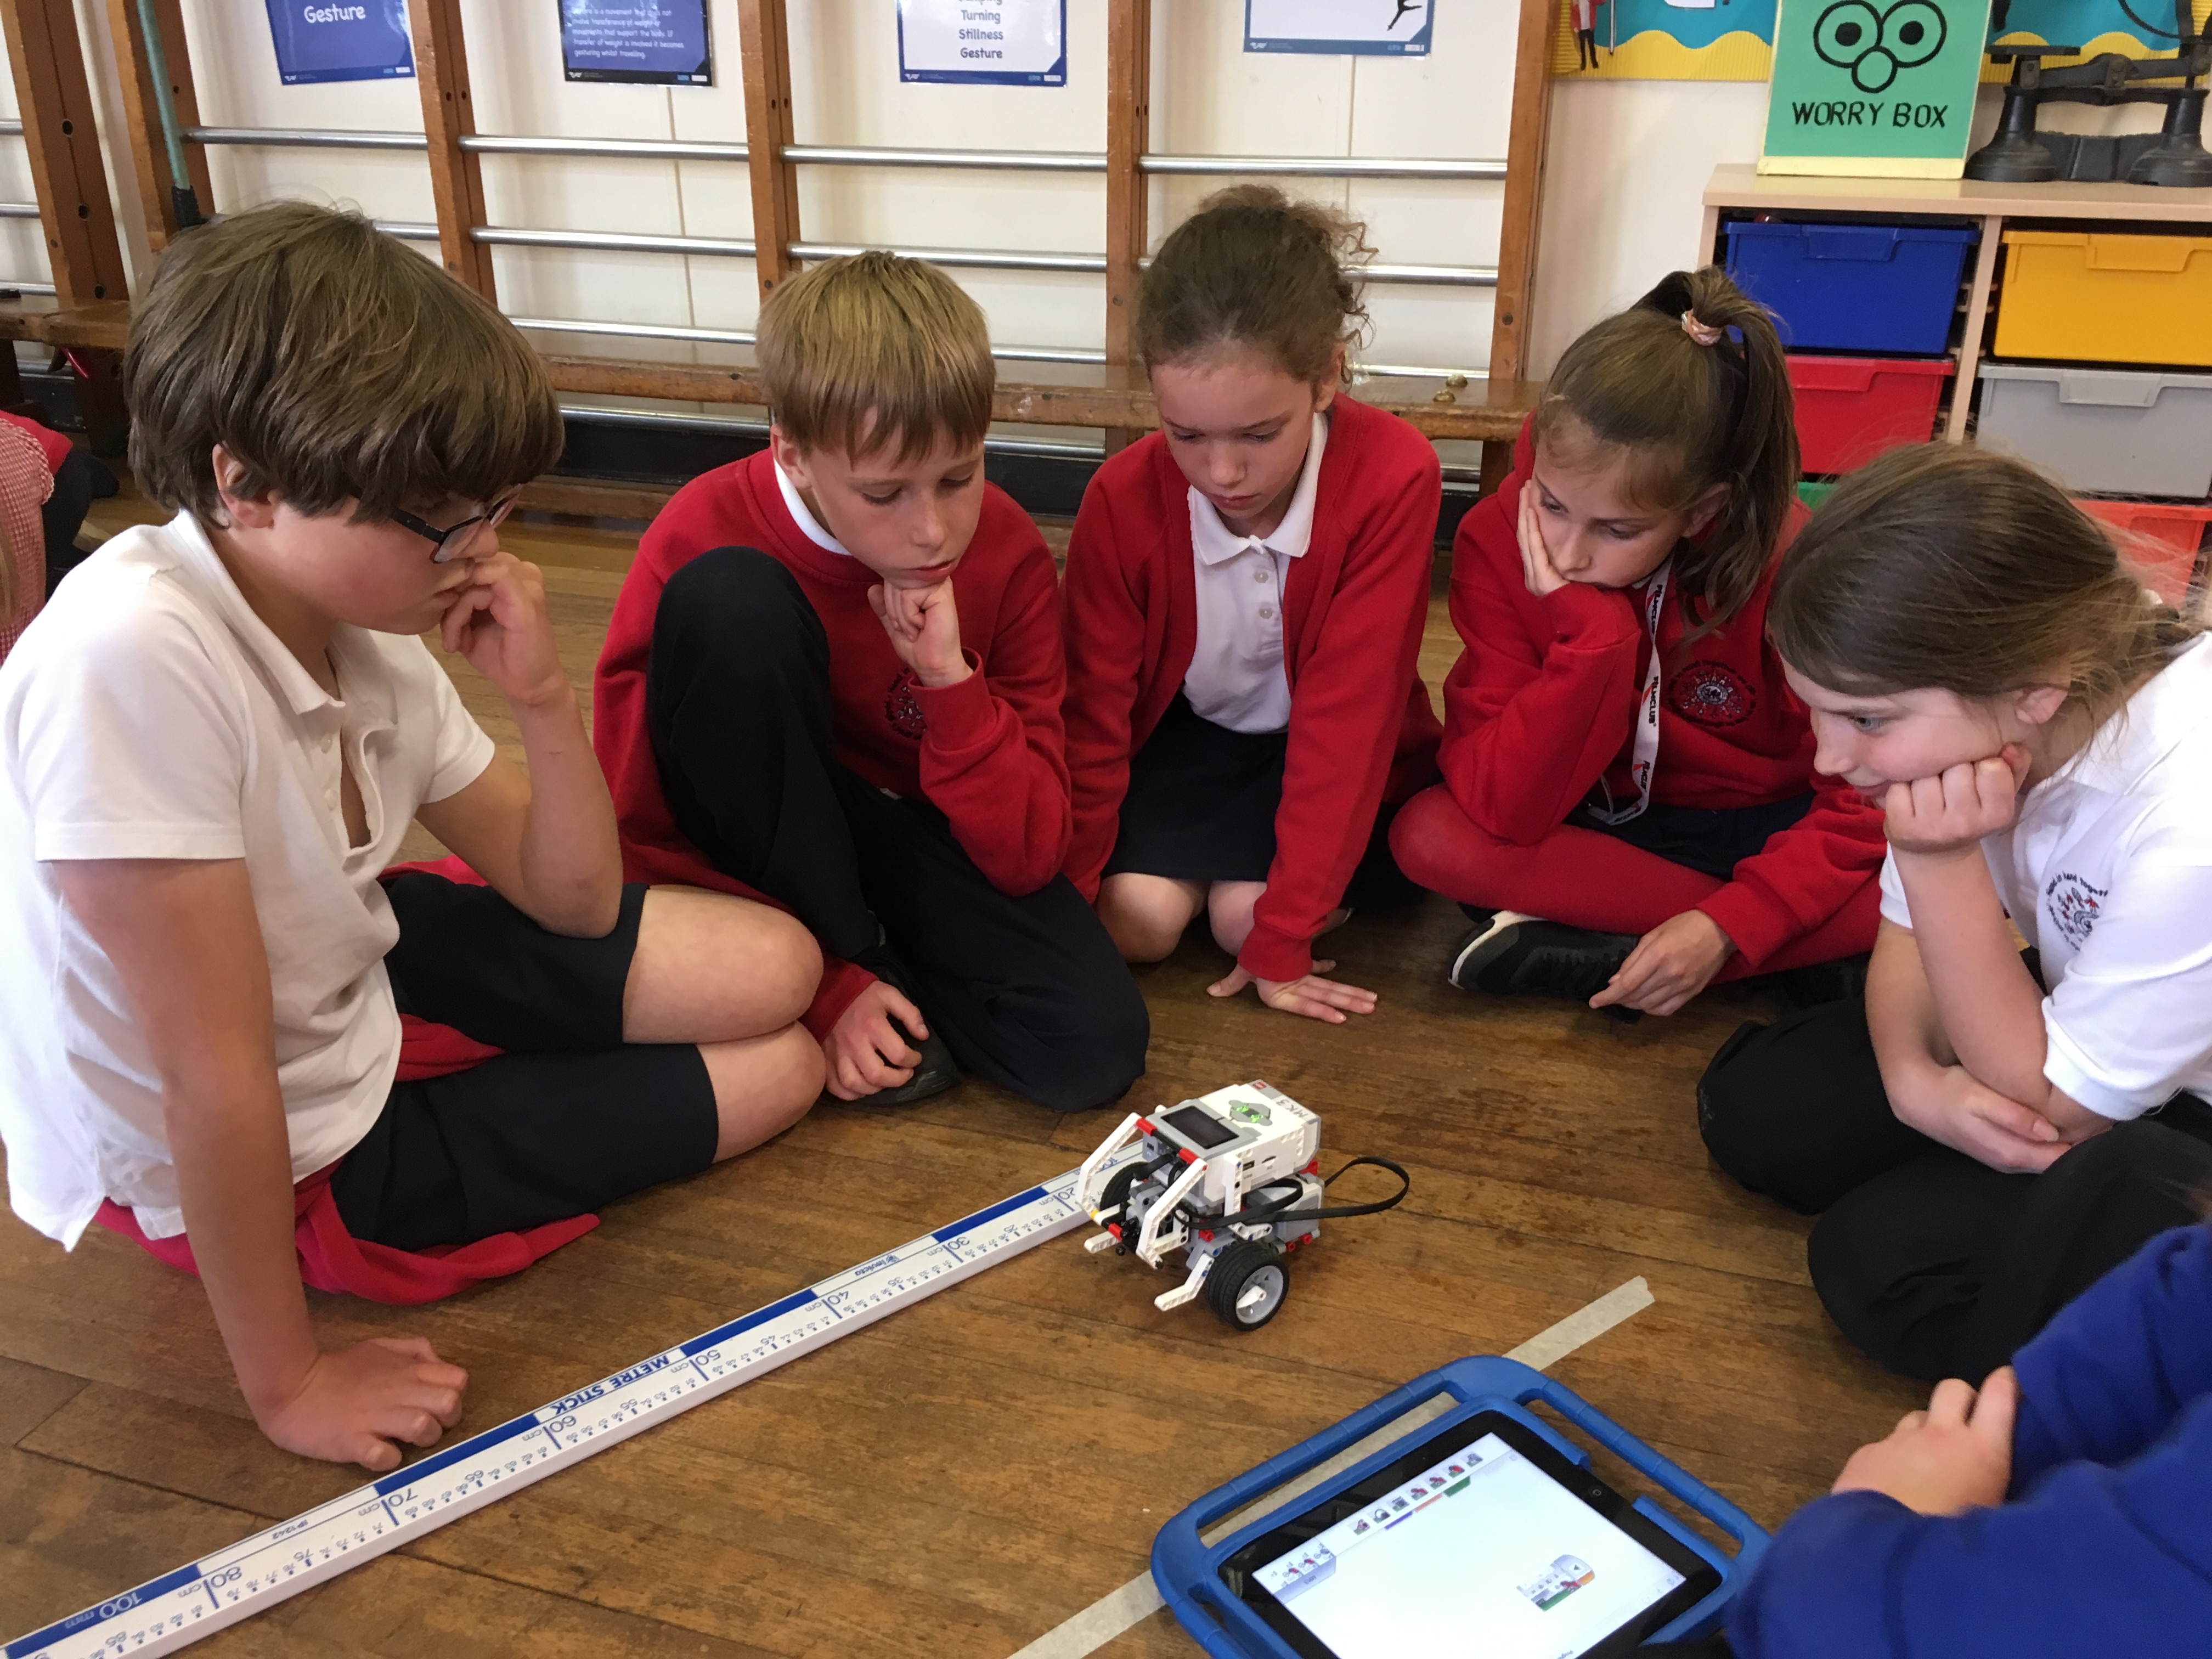 Lego Mindstorm training